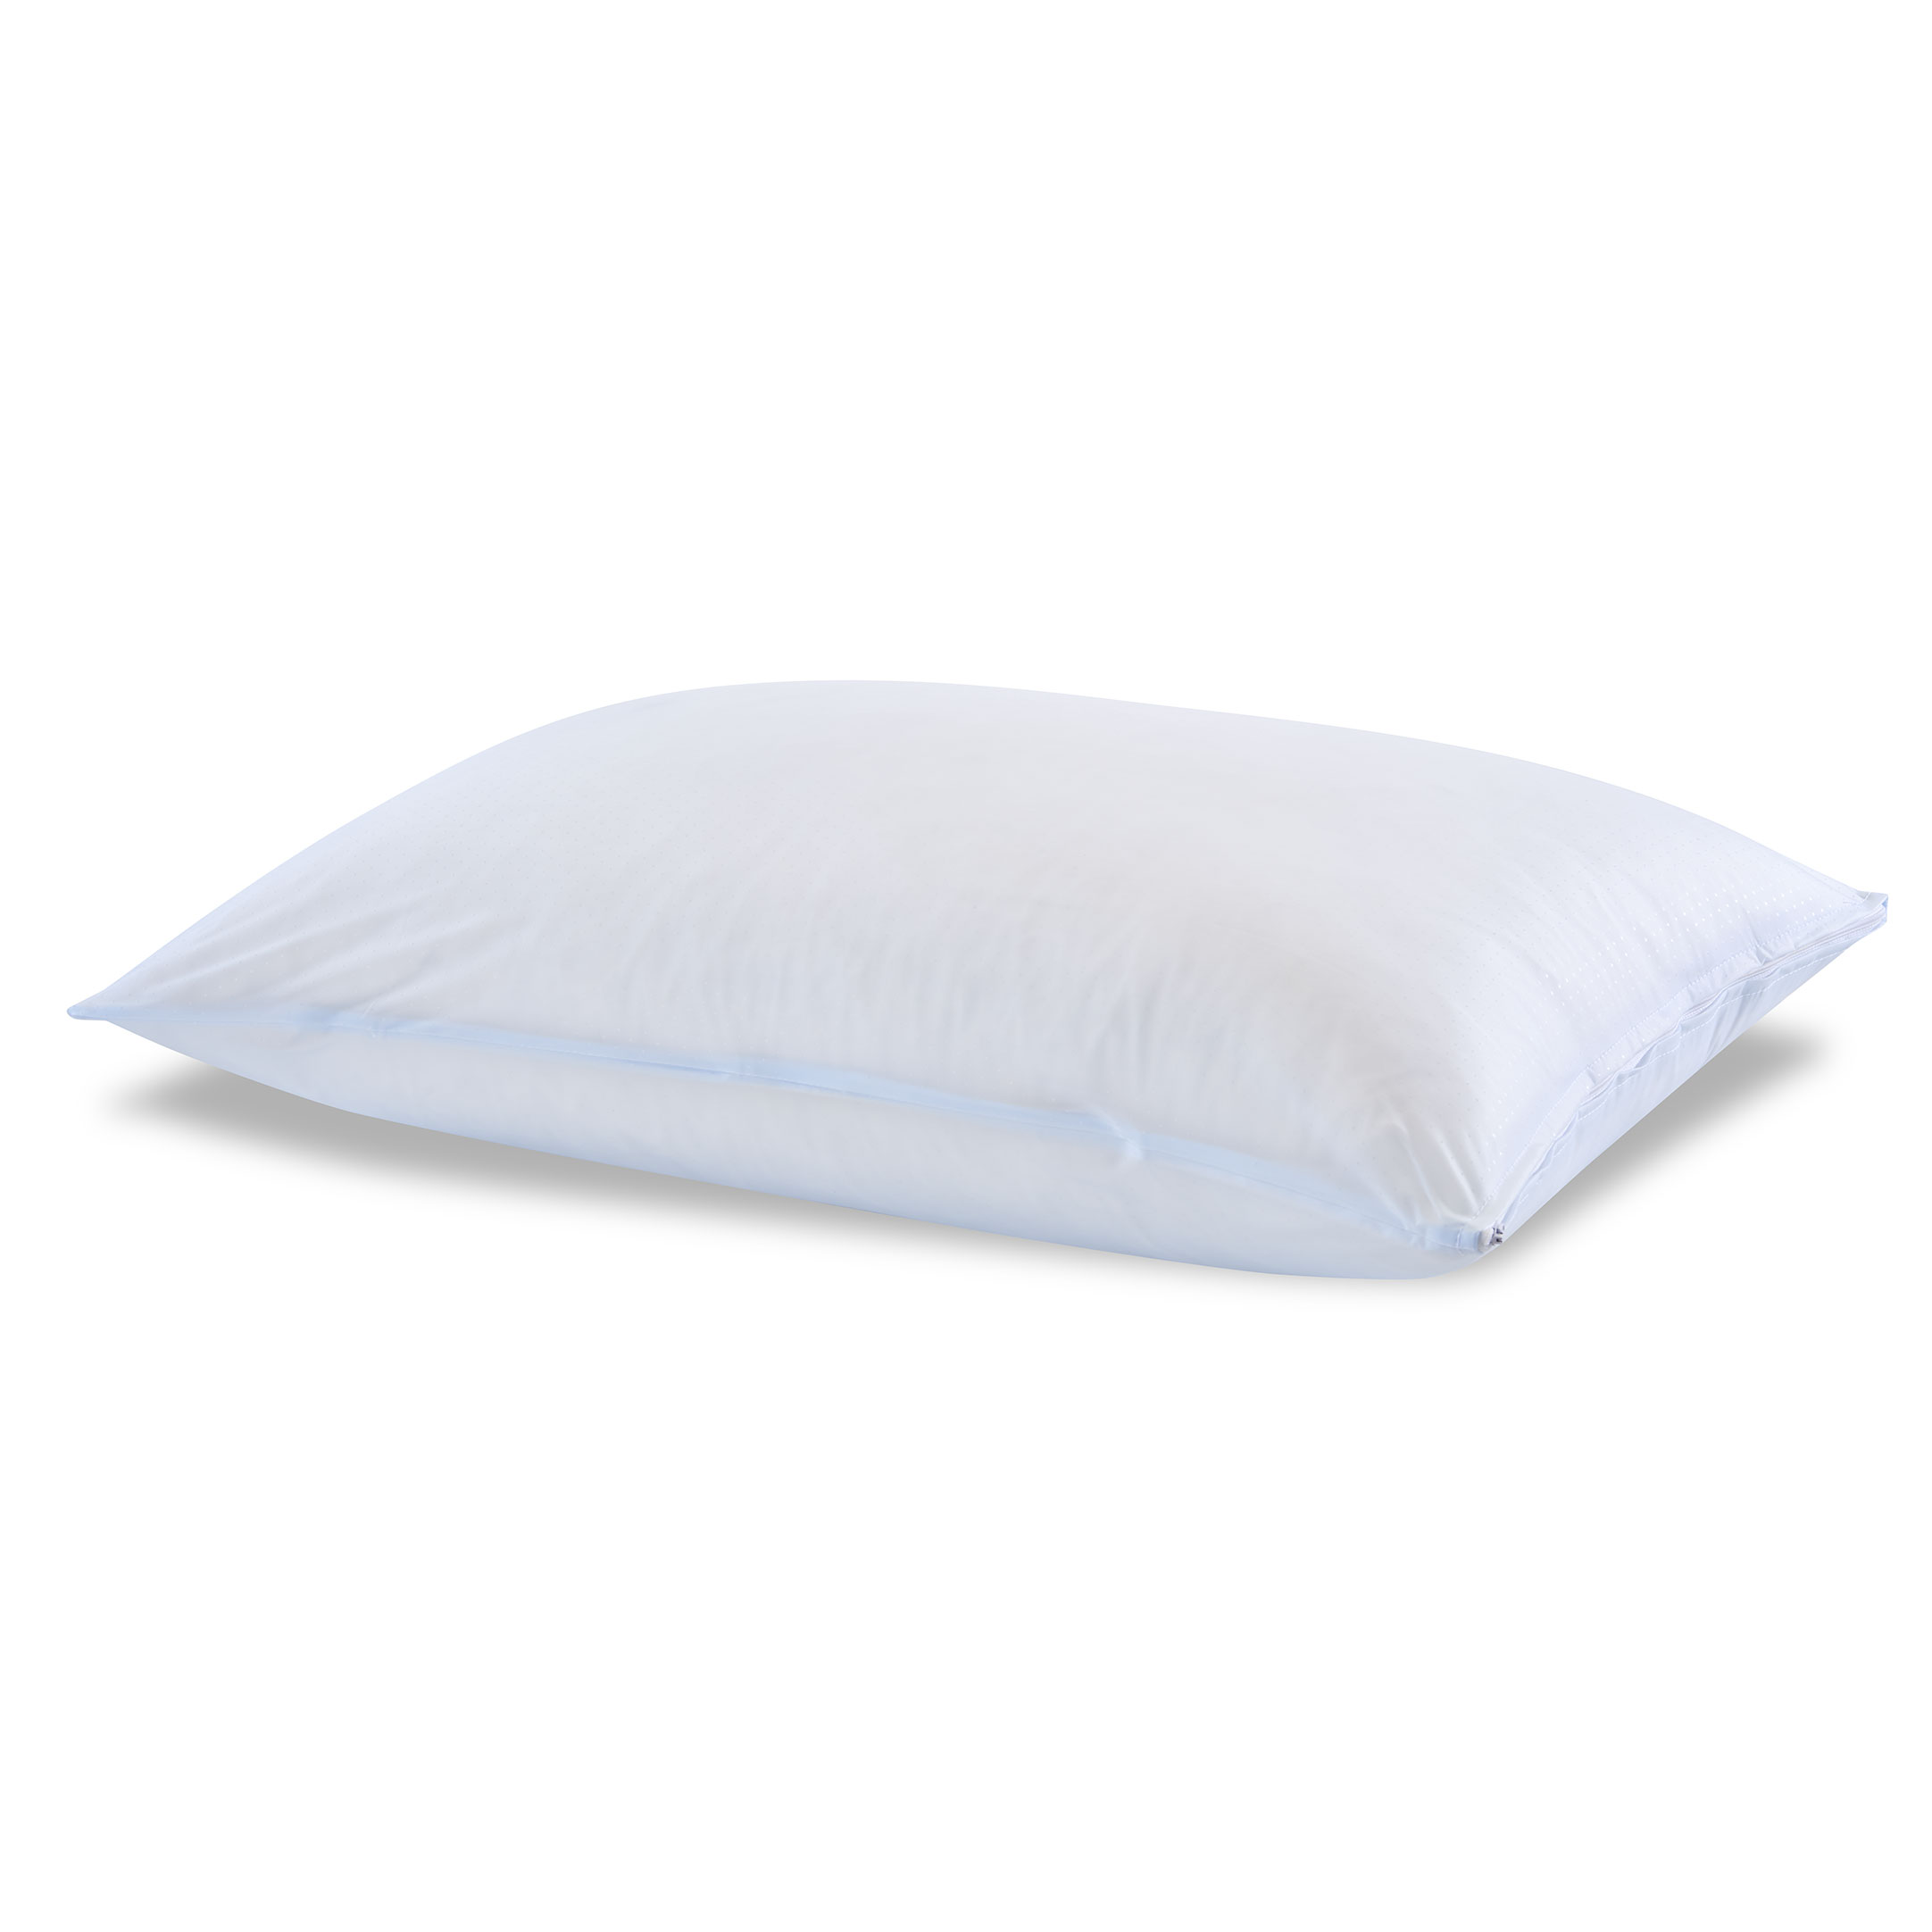 pillow designs allergy kids home great hypoallergenic fashion b bay premium cotton pack protector protectors zippered hfd products